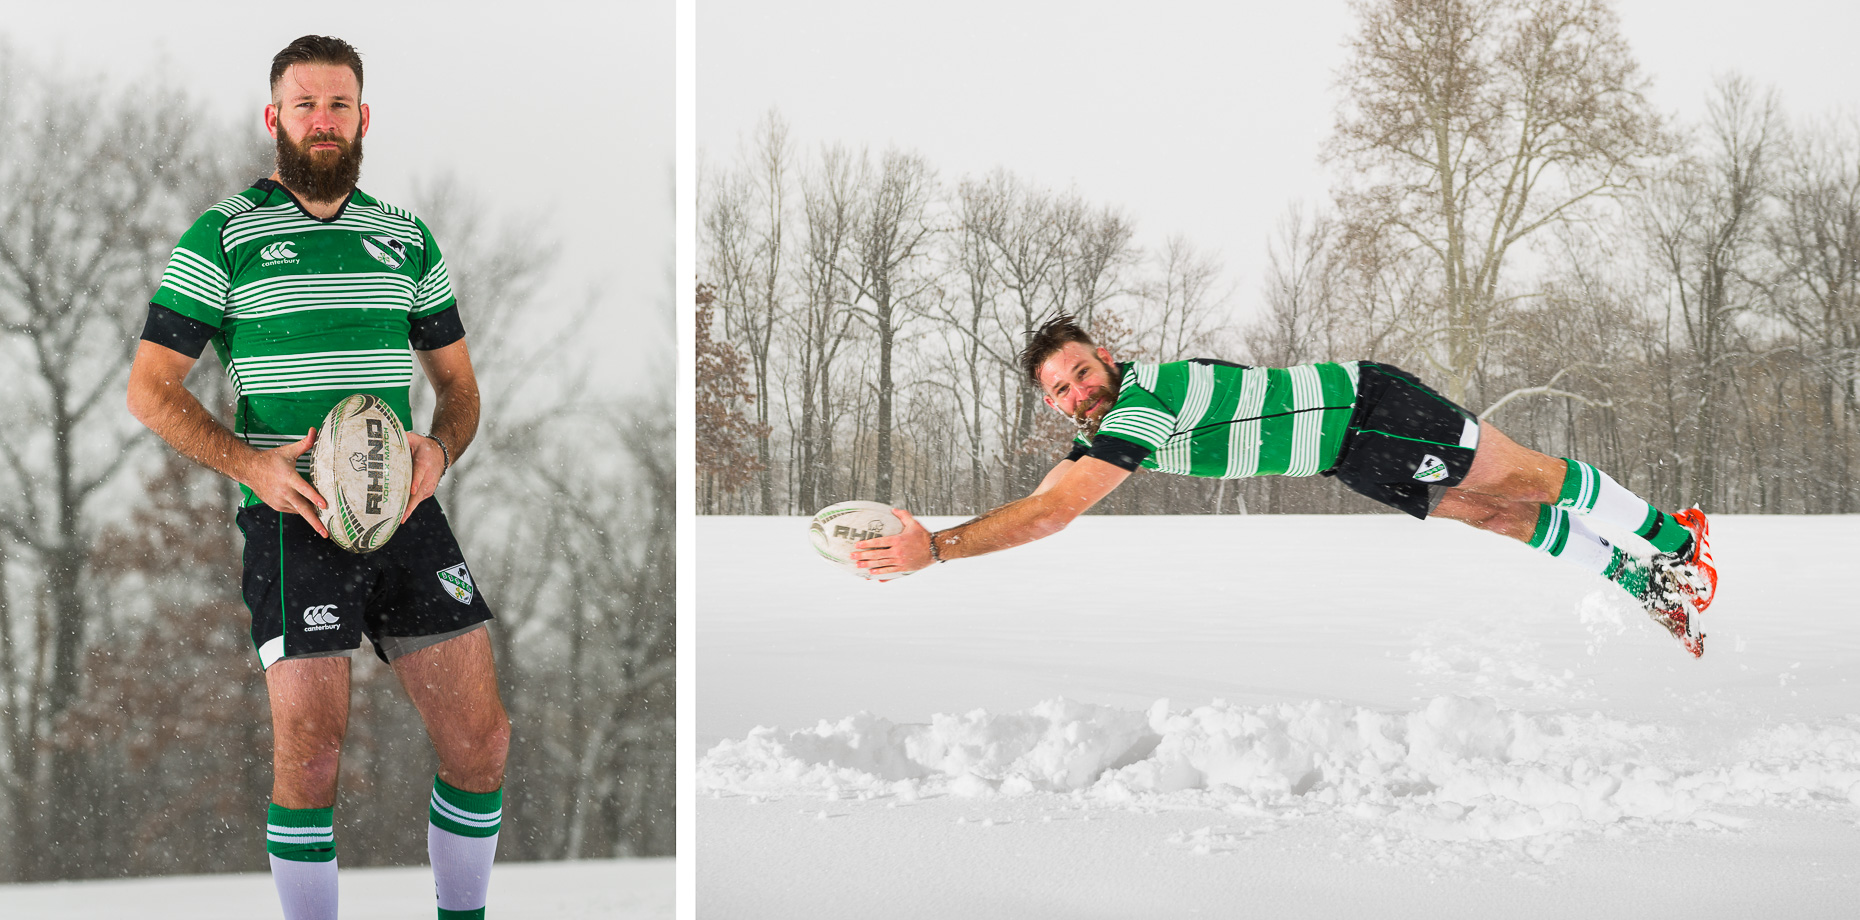 aaron-ingrao-19ideas-brinan-battenfeld-portrait-action-snow-sports-rugby